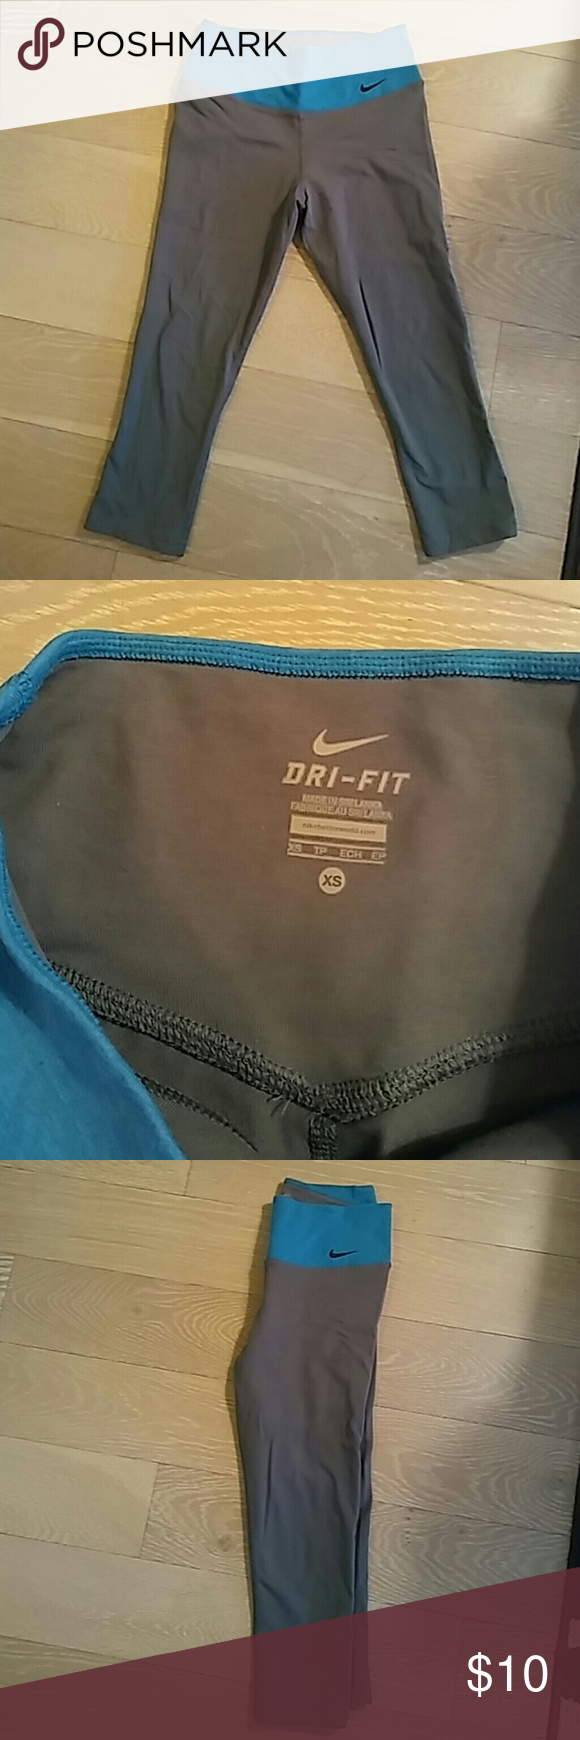 Nike crop yoga pants sz XS Blue and gray nike crops, size XS (extra small). Worn maybe once, no wear and tear Nike Pants Leggings